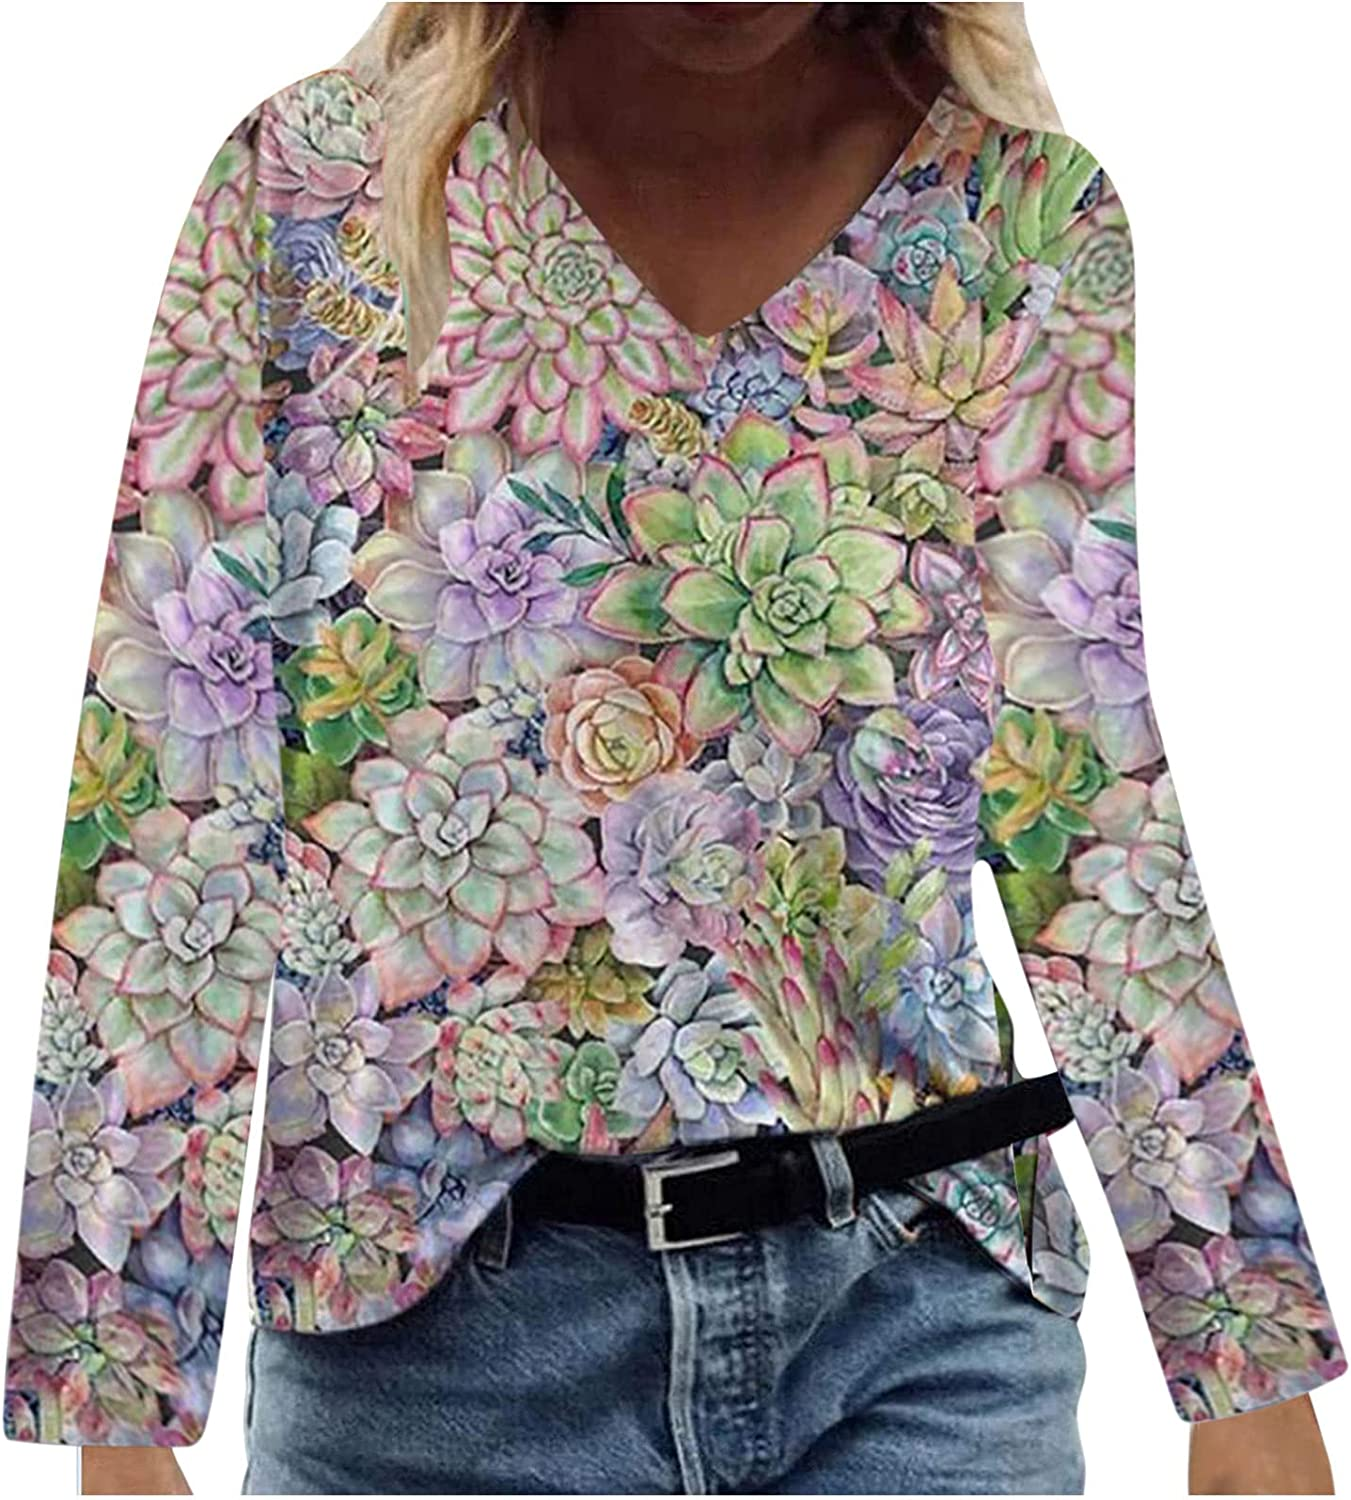 Floral Nature Lovers for Womens Long Sleeve T-Shirt Cute Butterfly Print V-Neck Pullover Tops Casual Flower Tees